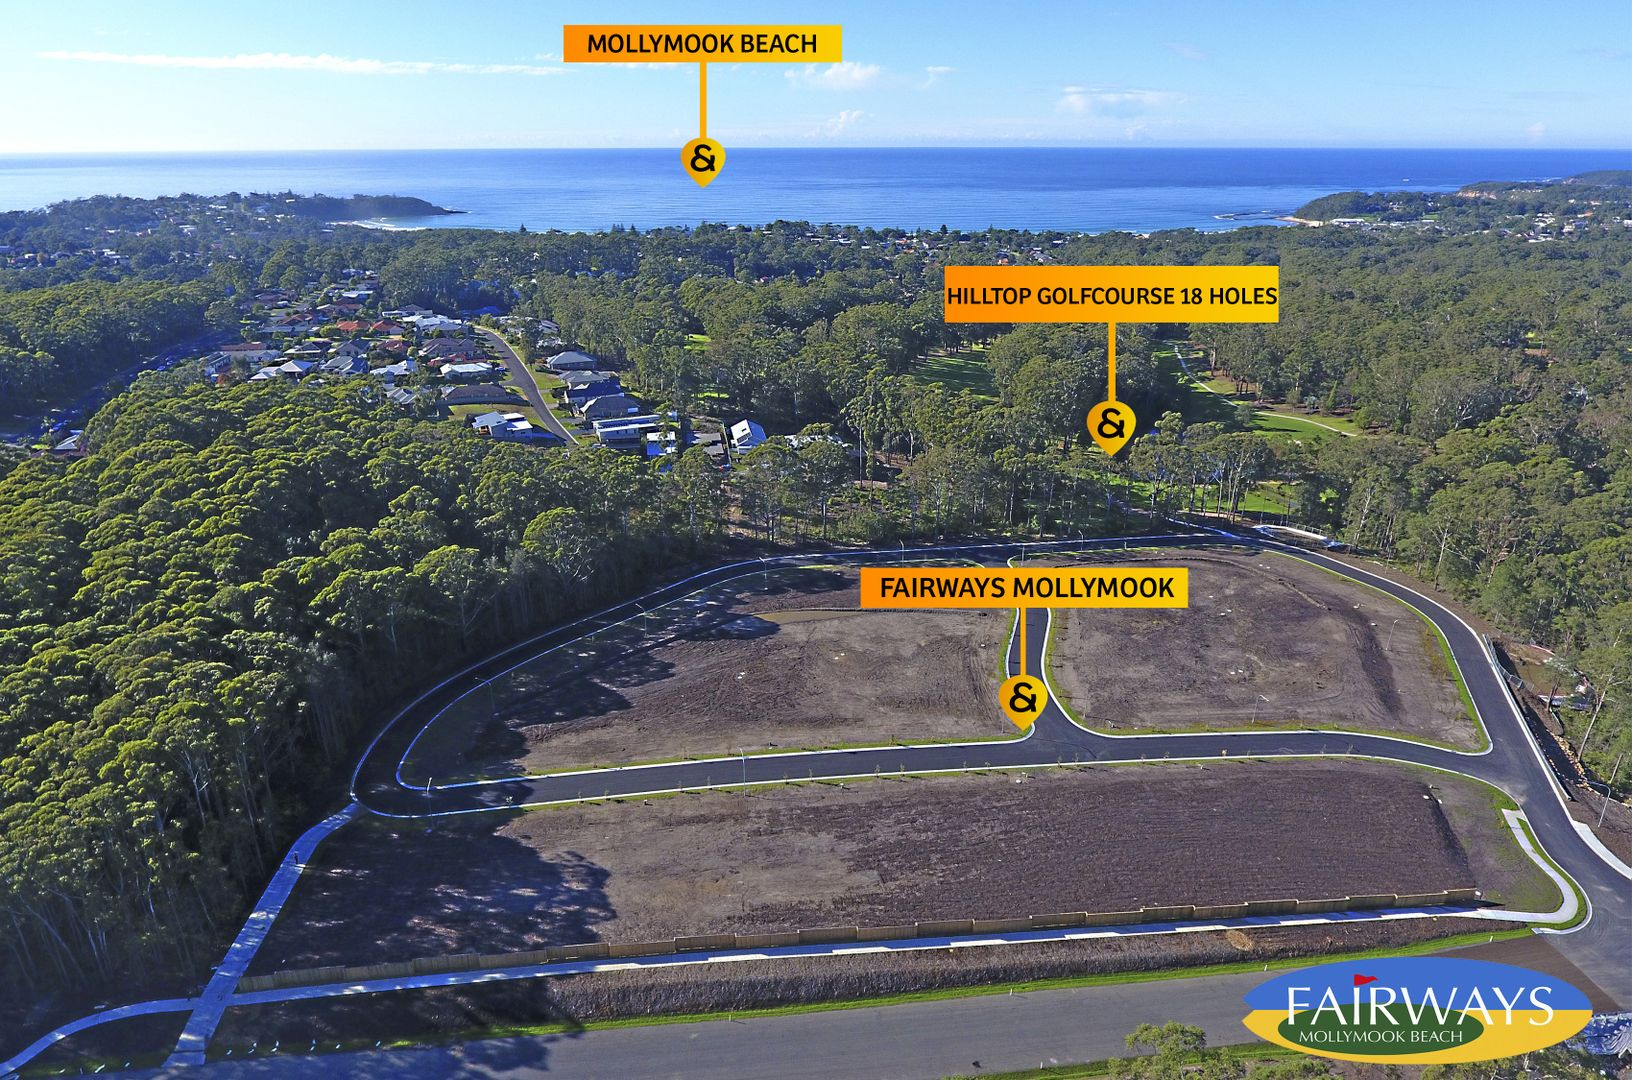 Lot 15 Brookwater Crescent - Fairways, Mollymook Beach NSW 2539, Image 2